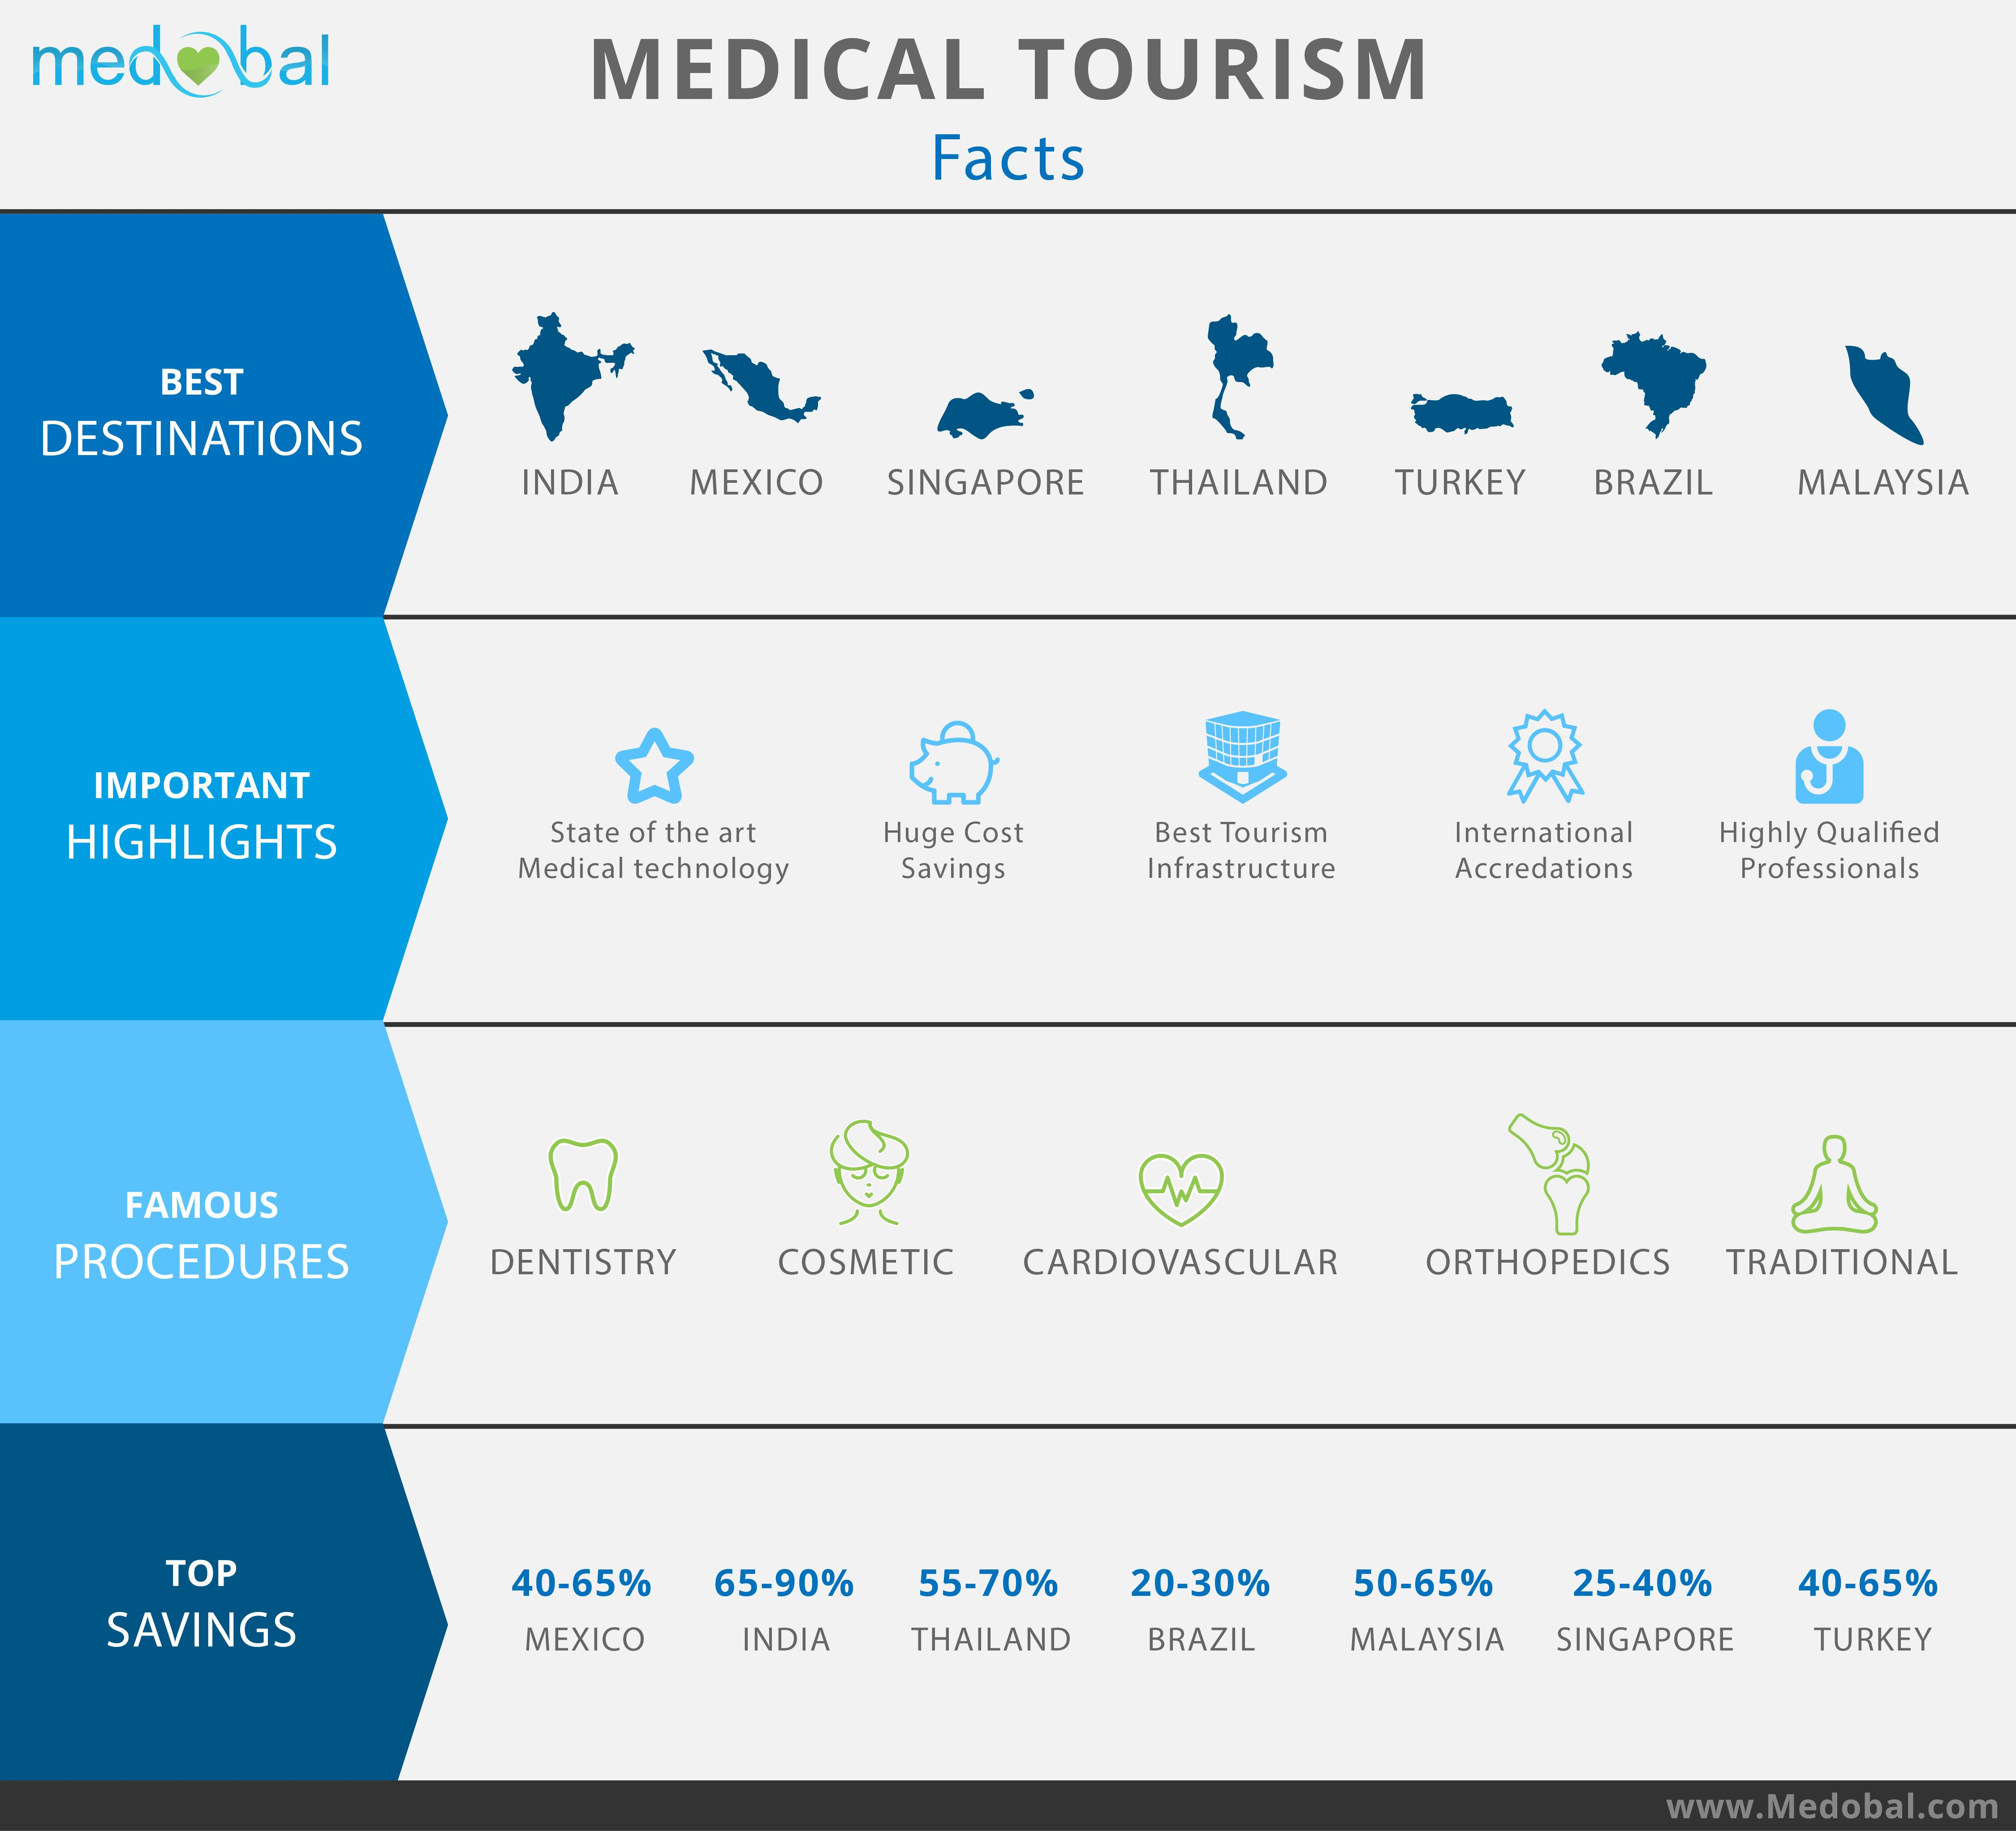 Global Medical Tourism Fact Sheet Hospitals Health